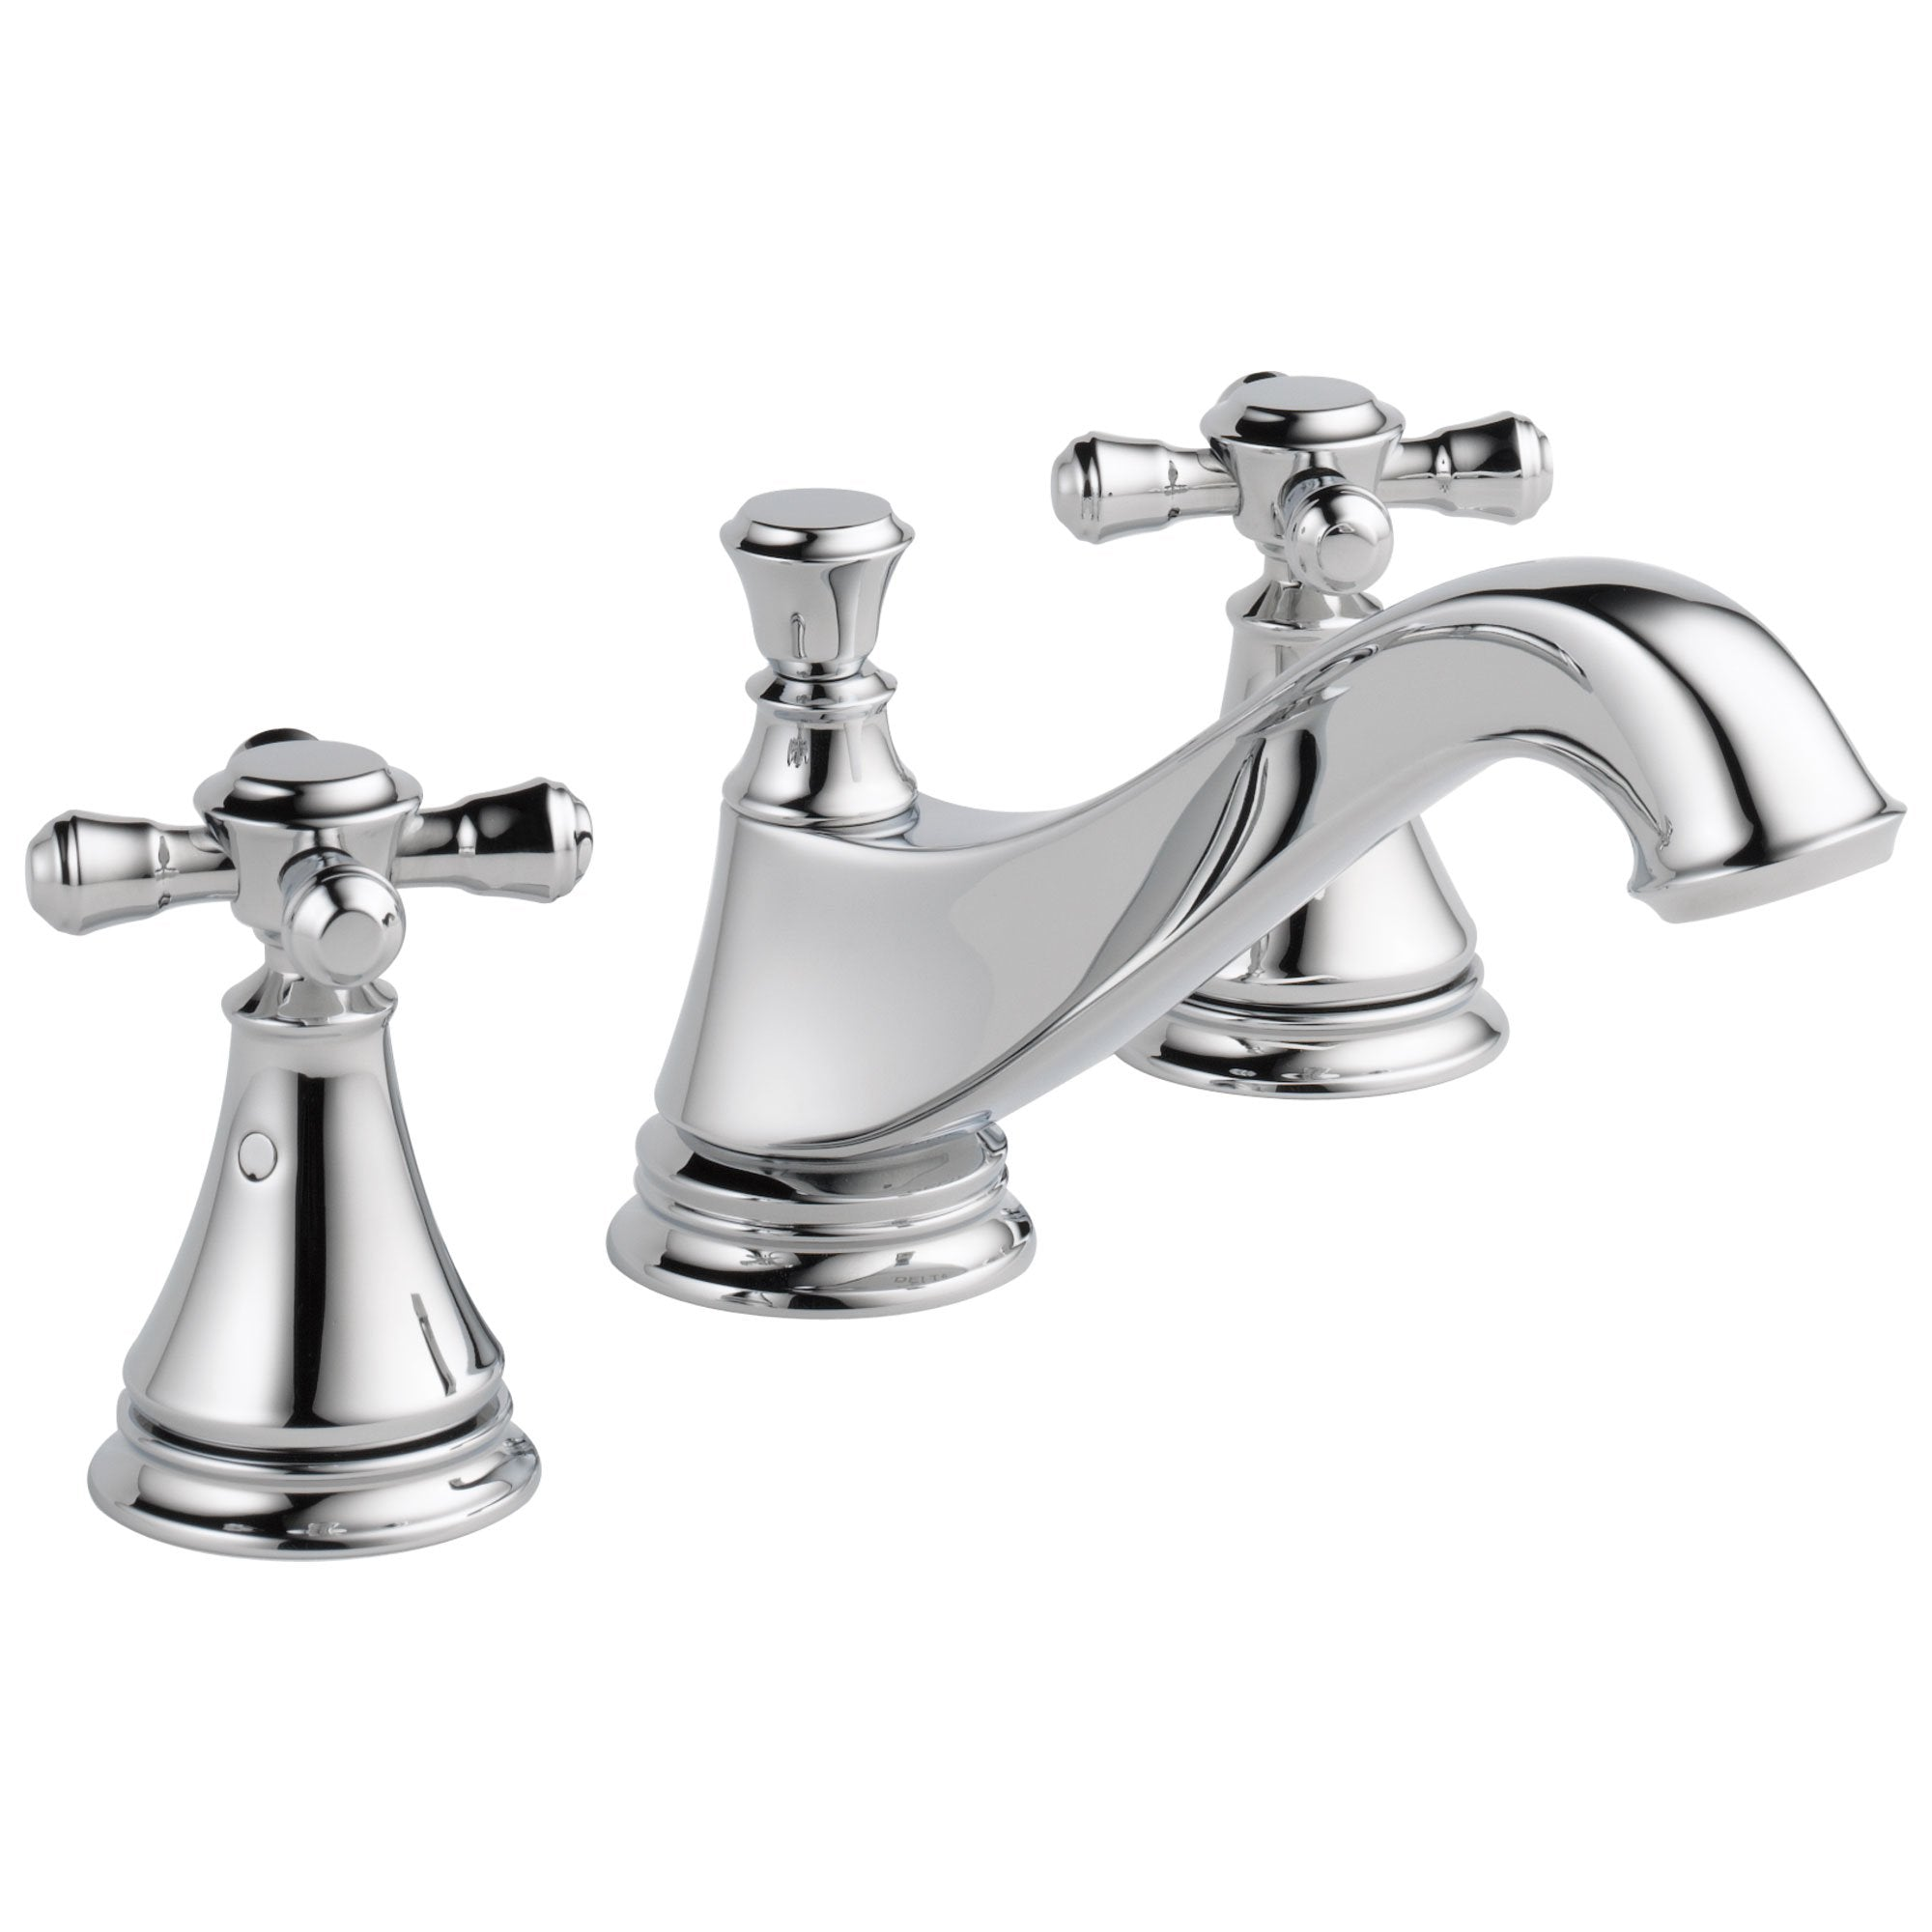 Delta Cassidy Collection Chrome Finish Traditional Low Spout Widespread Bathroom Sink Faucet INCLUDES Two Cross Handles and Drain D1798V